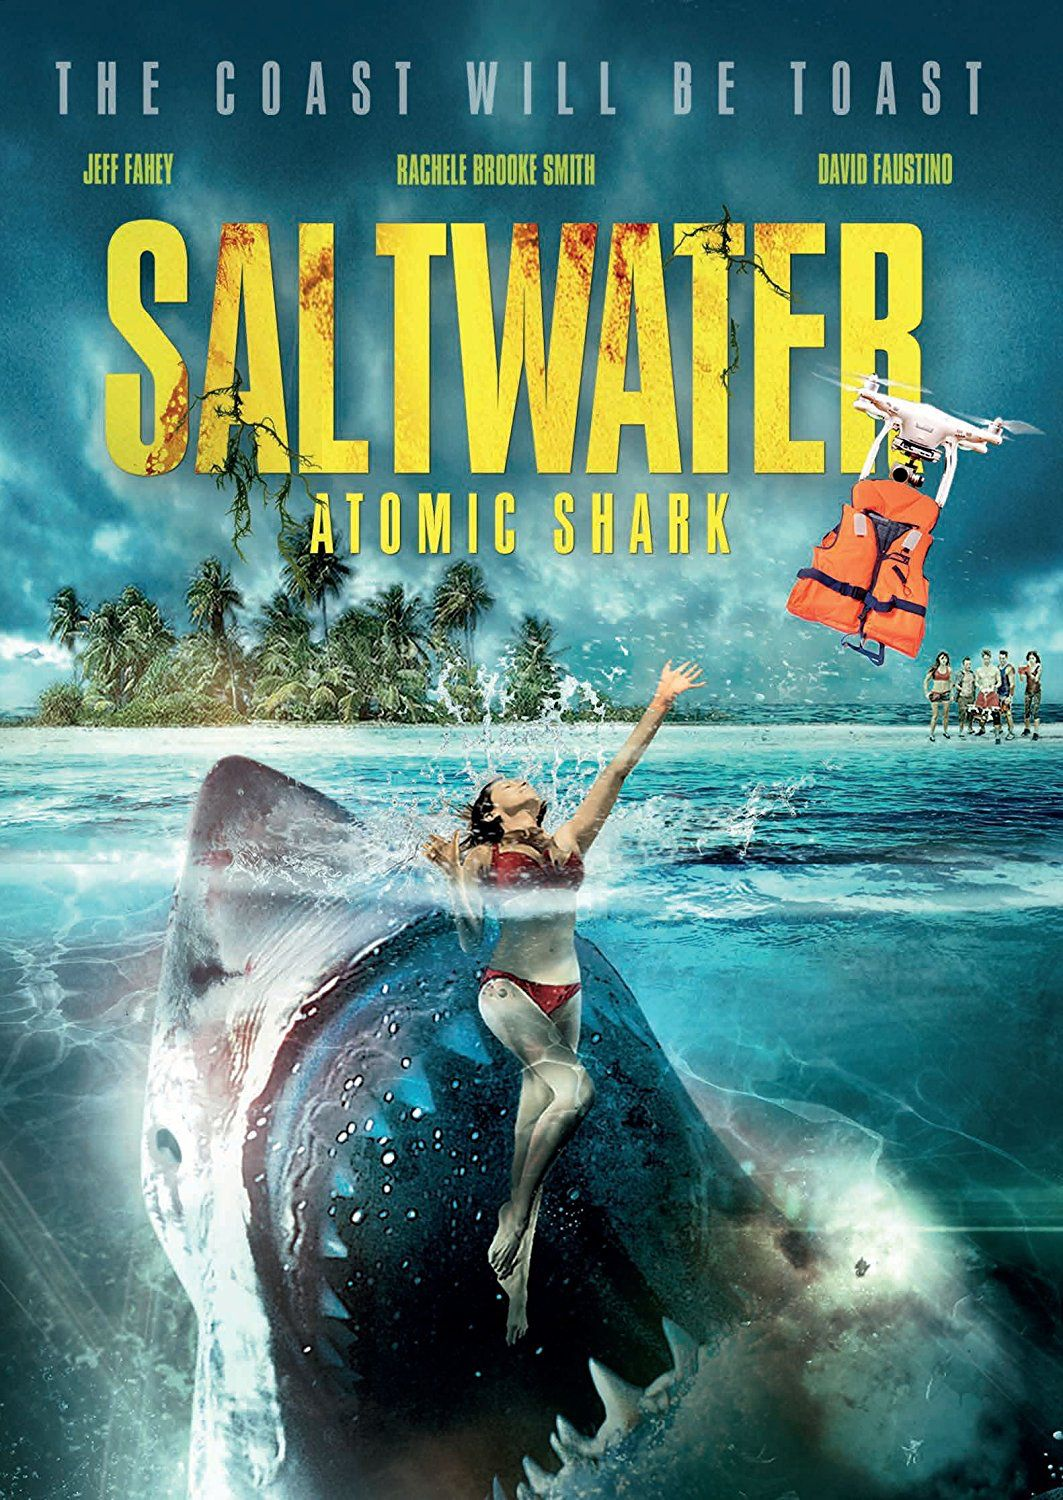 SALTWATER ATOMIC SHARK DVD (ITN DISTRIBUTION) (With